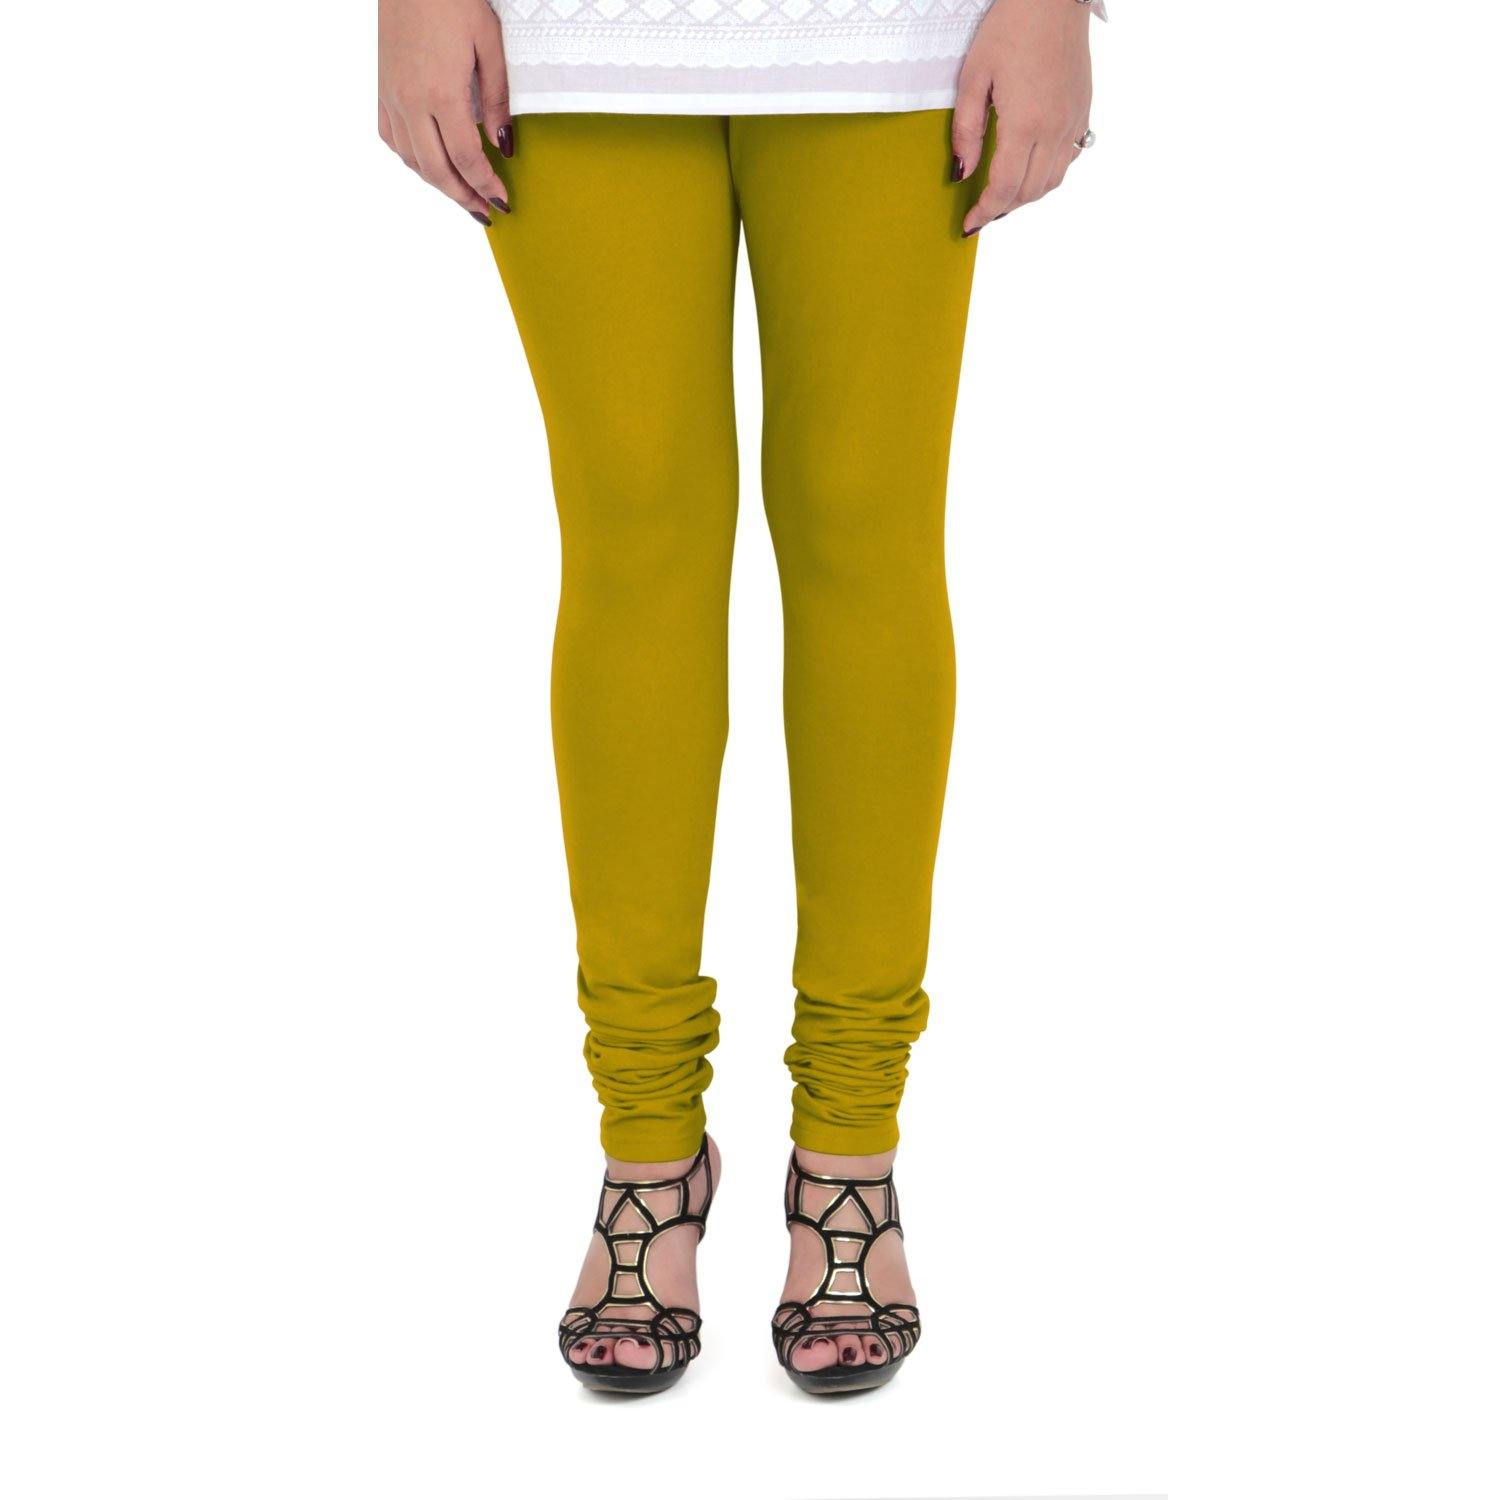 Vami Women's Cotton Stretchable Churidar Legging - Golden